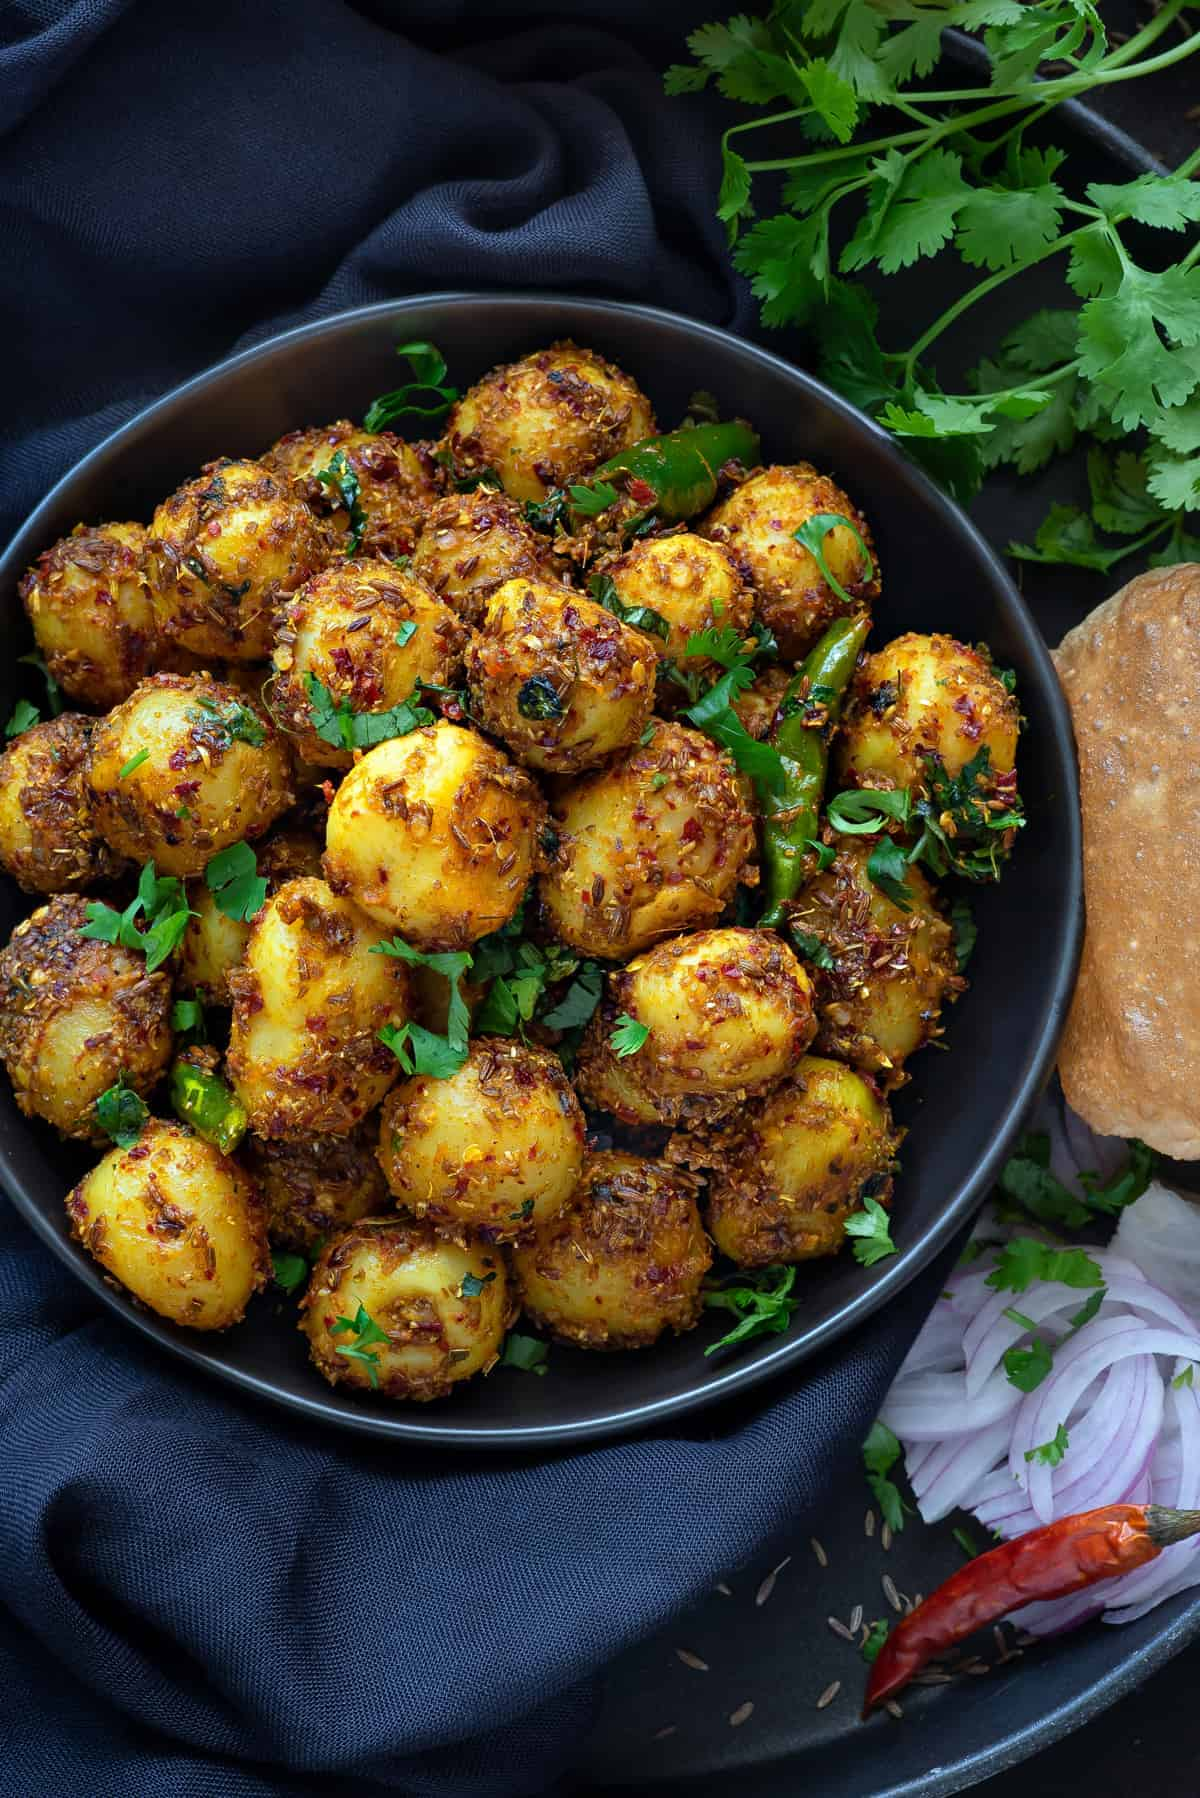 Close up of Jeera aloo served on round earthenware with sliced onions and chili on side